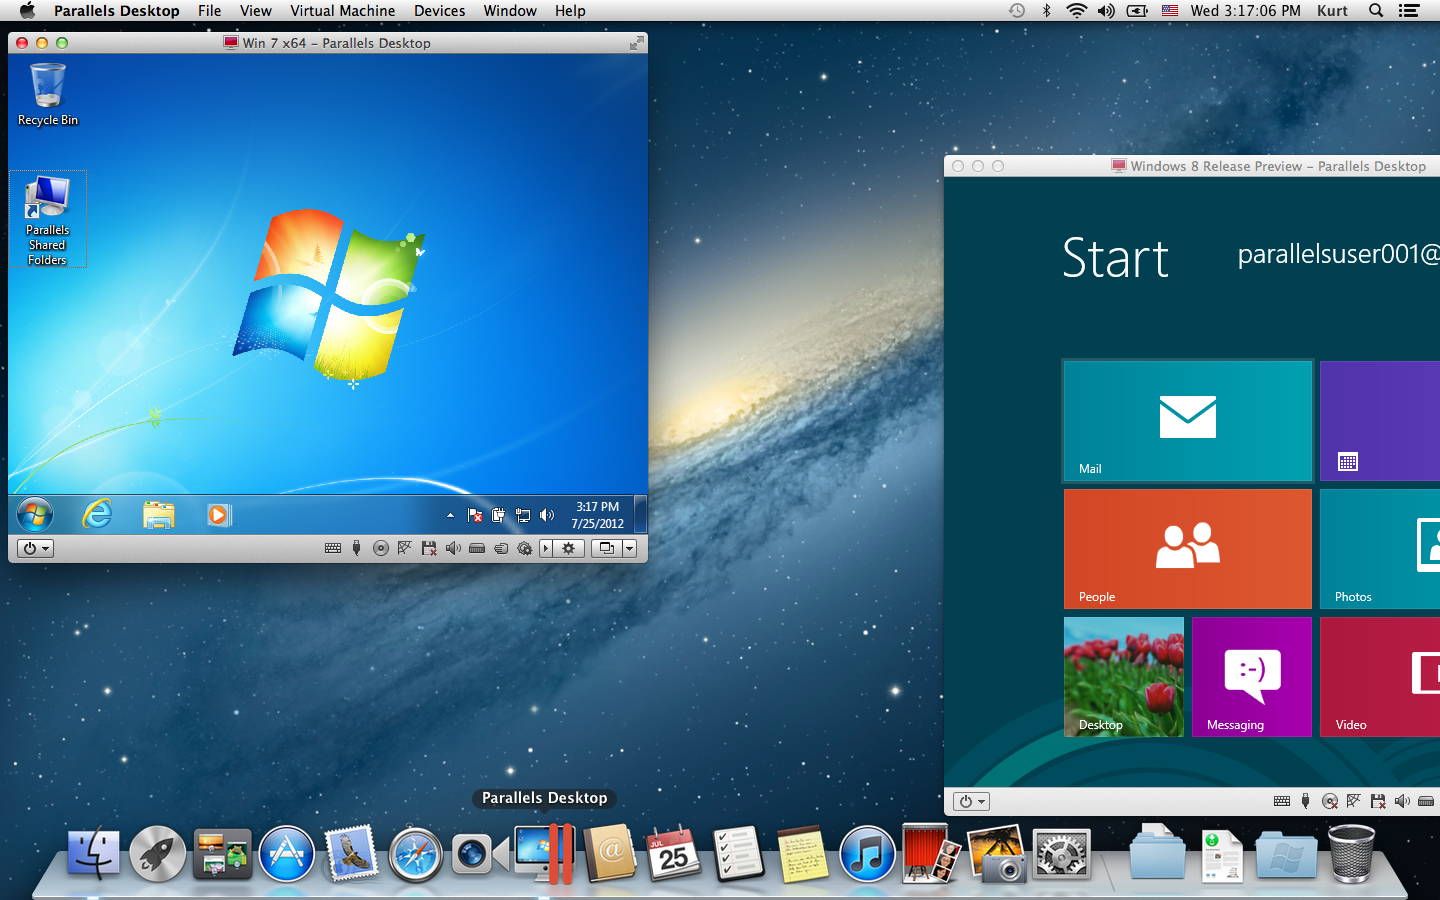 Parallels Desktop 7 and OS X 10.8 Mountain Lion on a MacBook Air.png